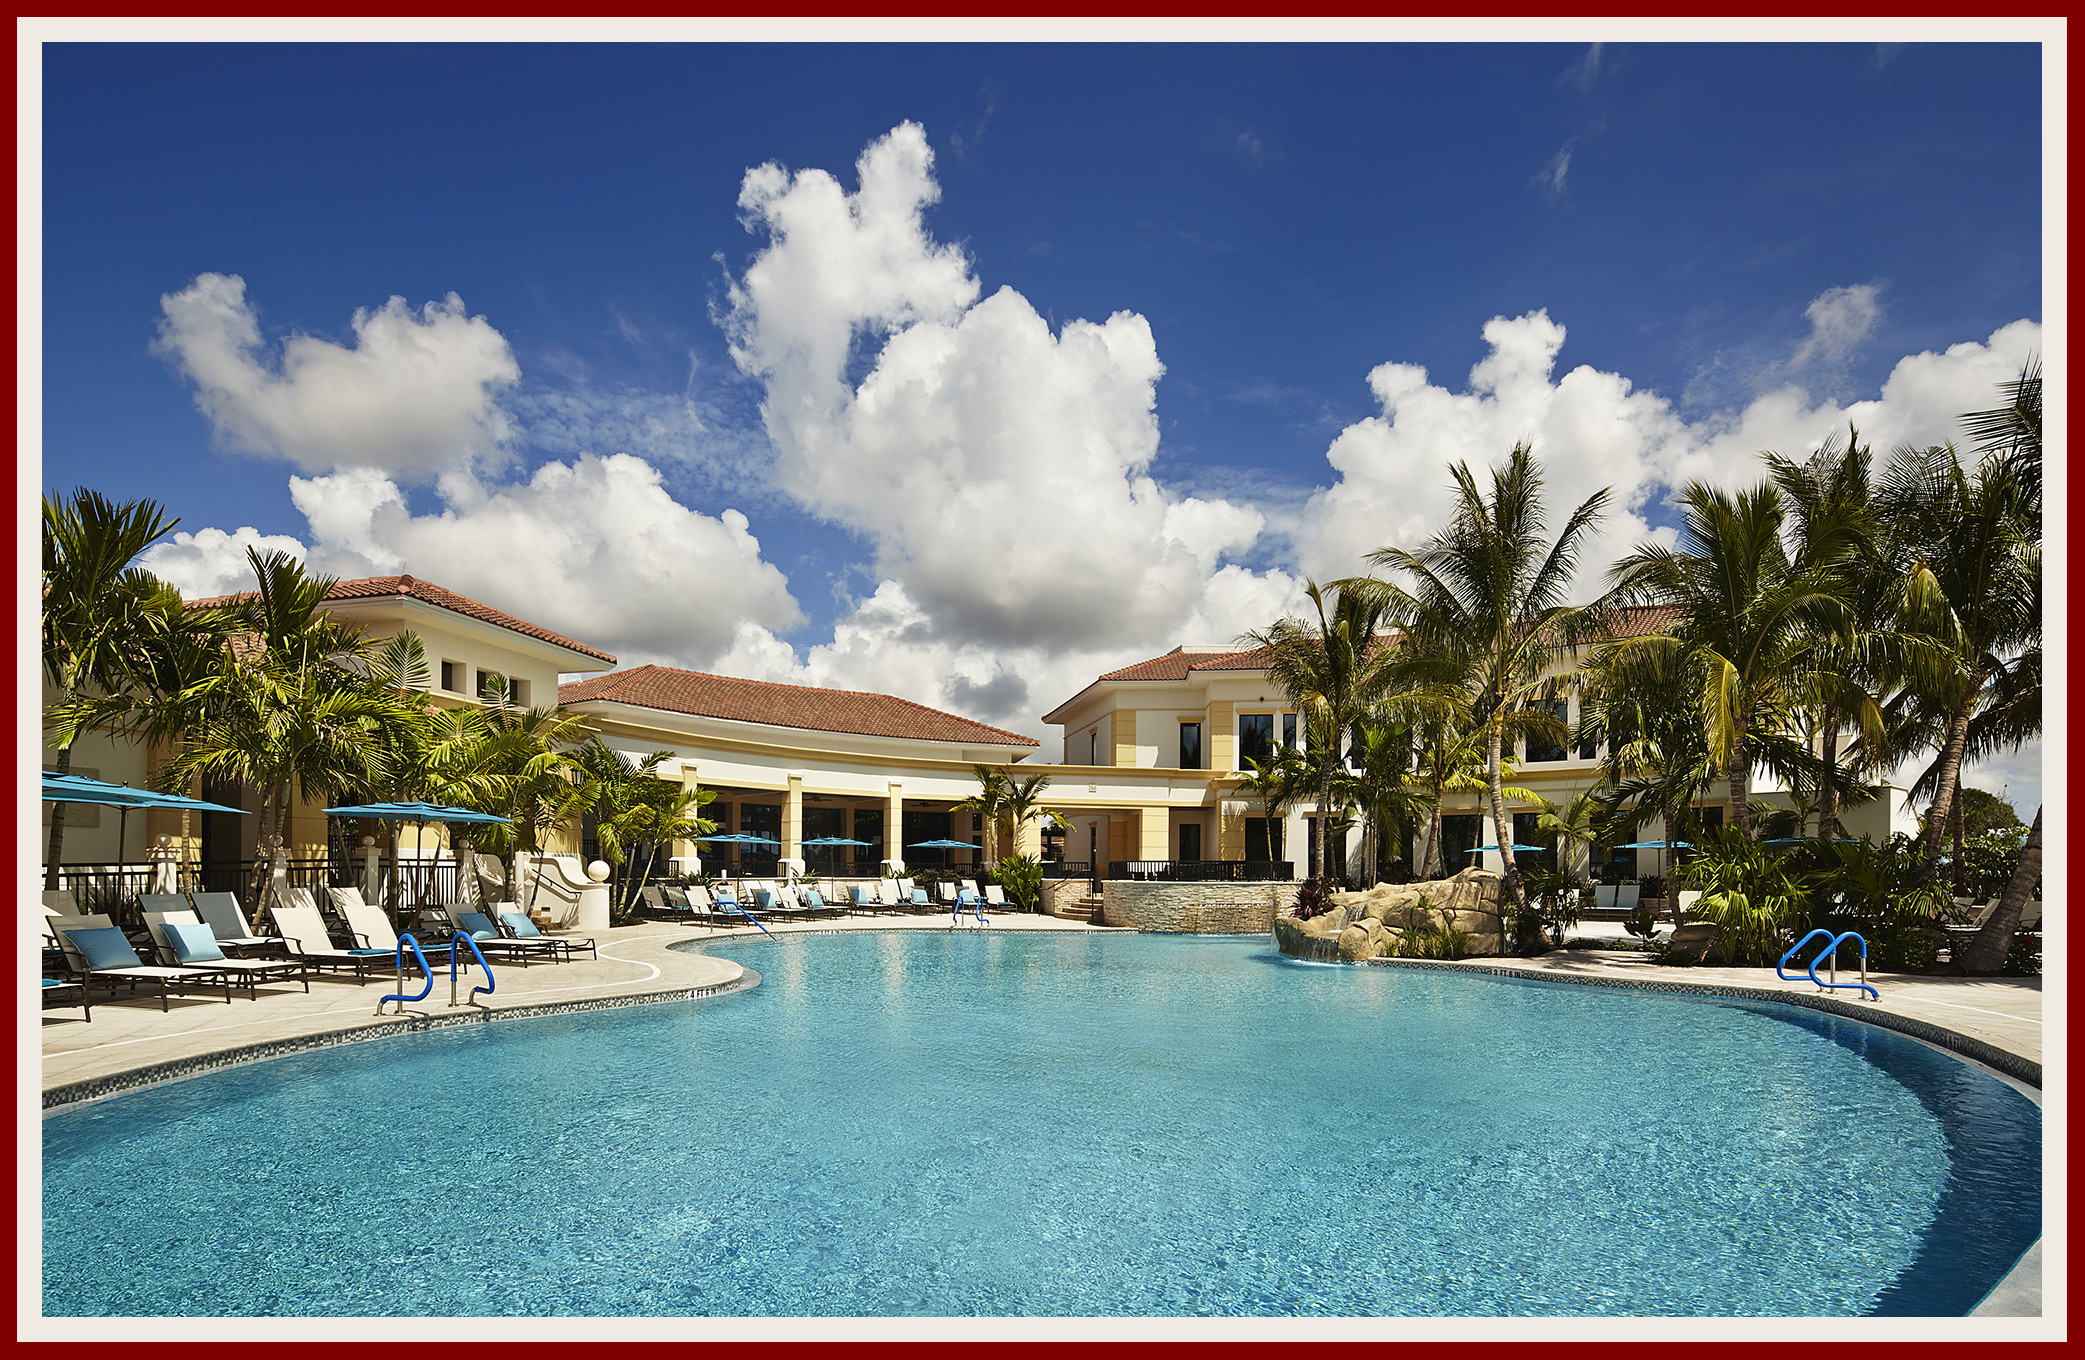 Ibis Golf and Country Club Homes For Sale Community Pool